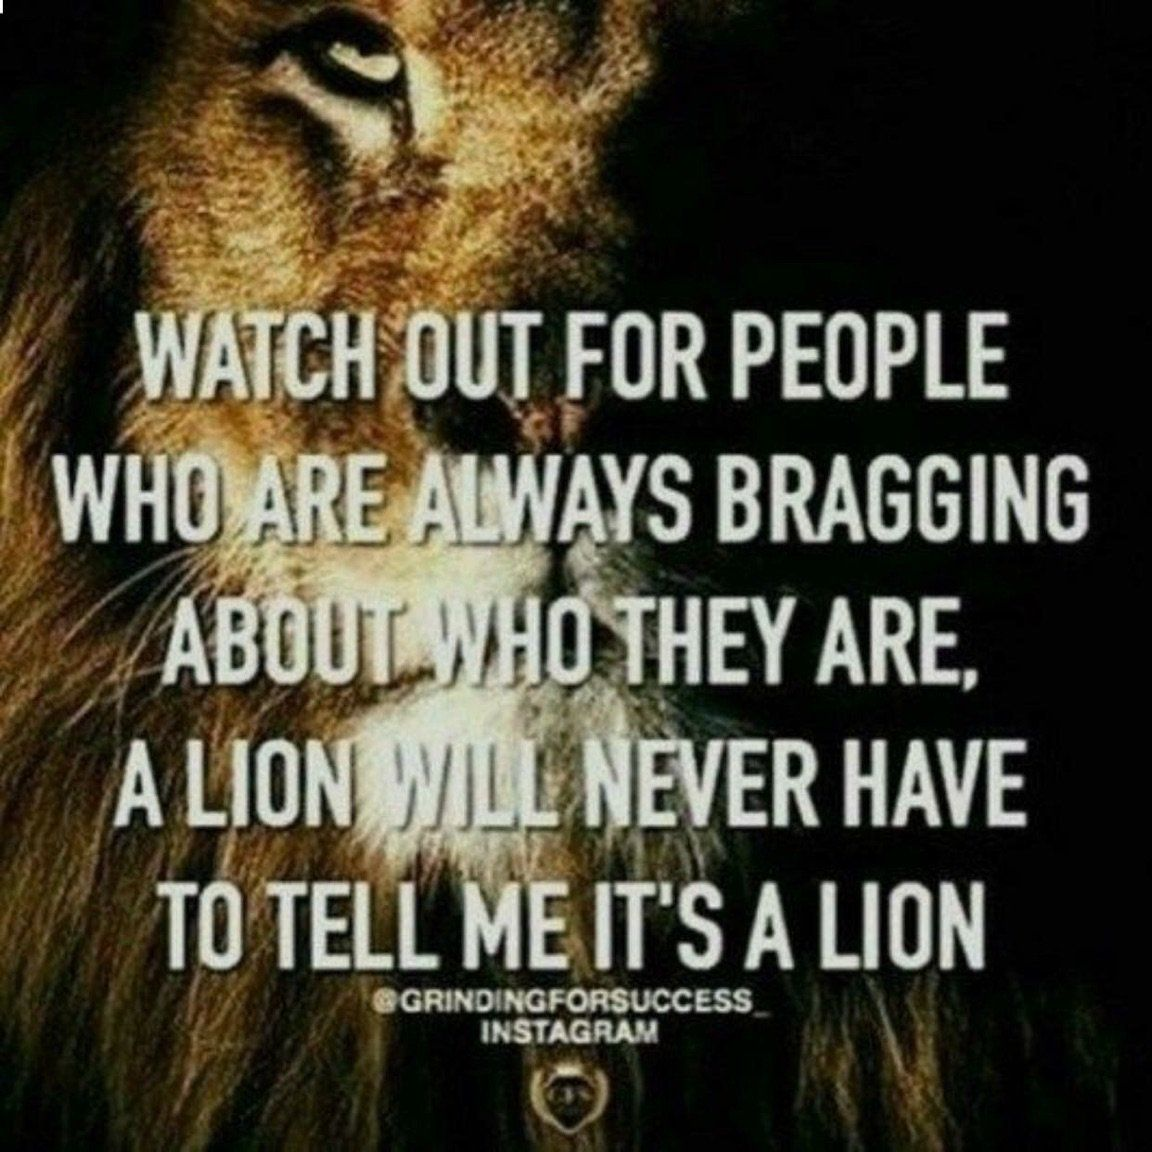 Watch out for people who are always bragging about who they are. A lion will never have to tell me it's a lion.